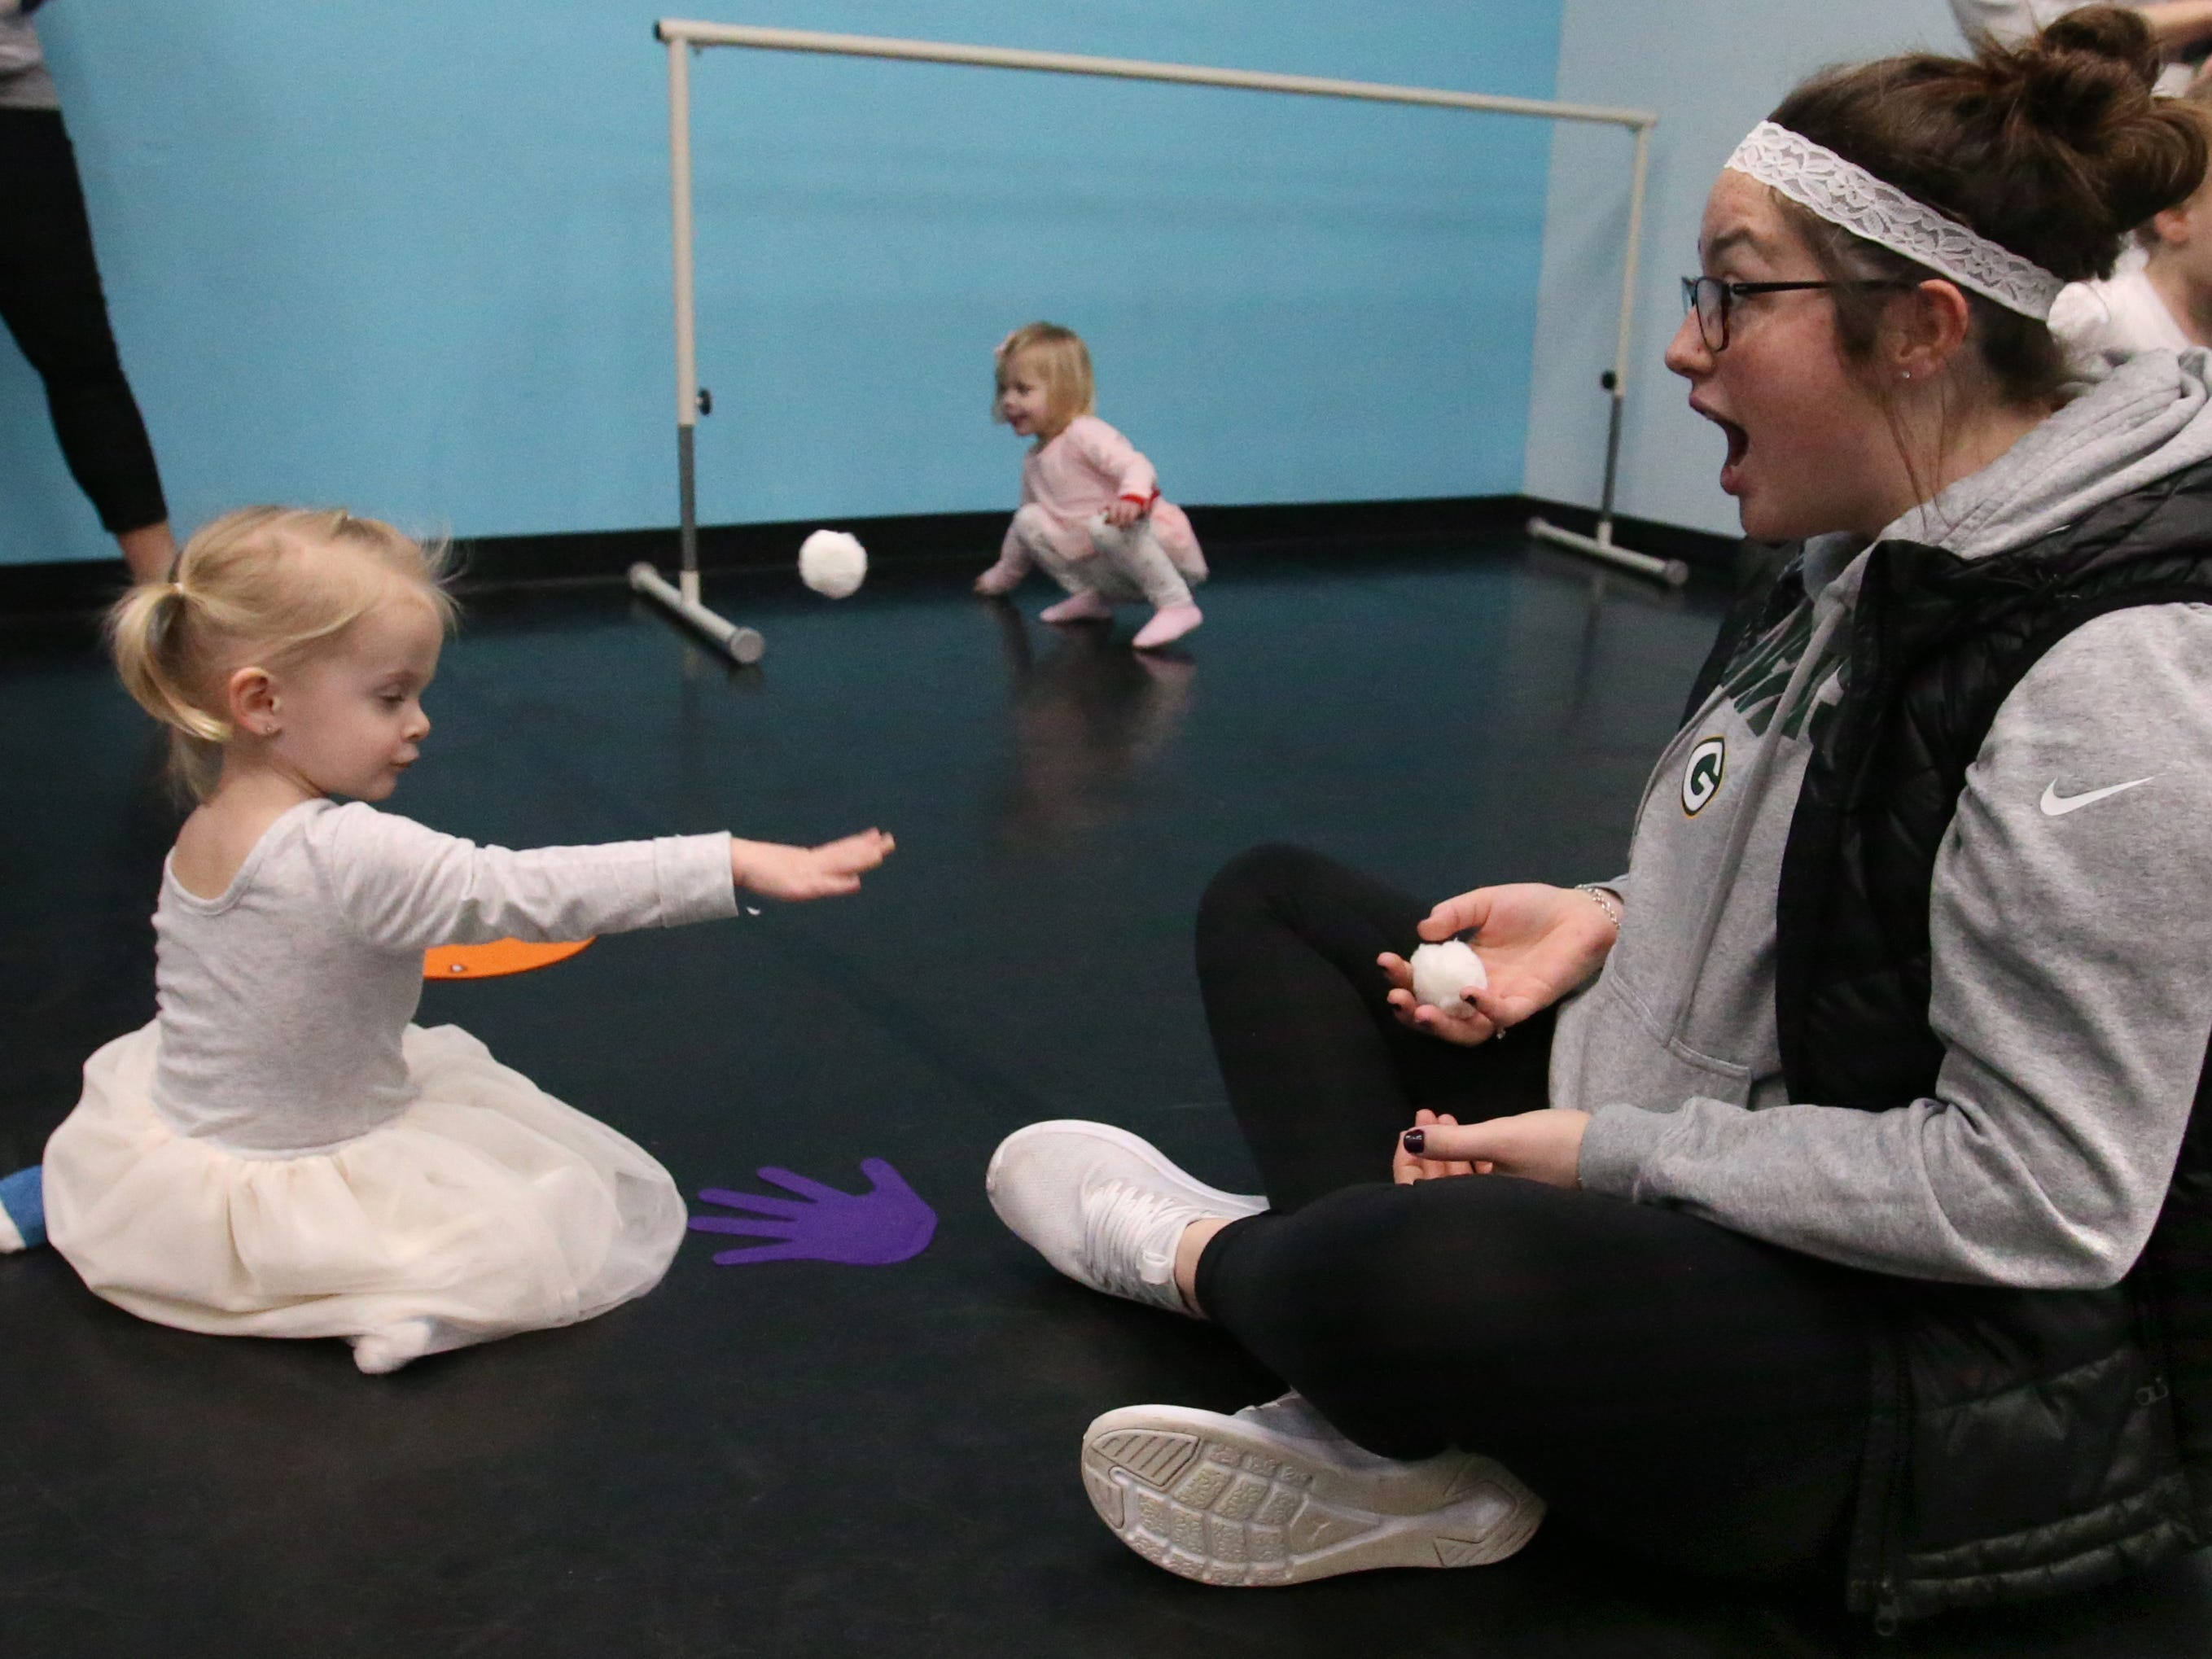 Emmalou Dudley, 2, and Kylie McElderry have a snowball fight with cotton balls during a free Story Time Tuesday for pre-school children that included a book reading, craft activity and play at the Liberty Dance Center in Waukesha on Jan. 8.